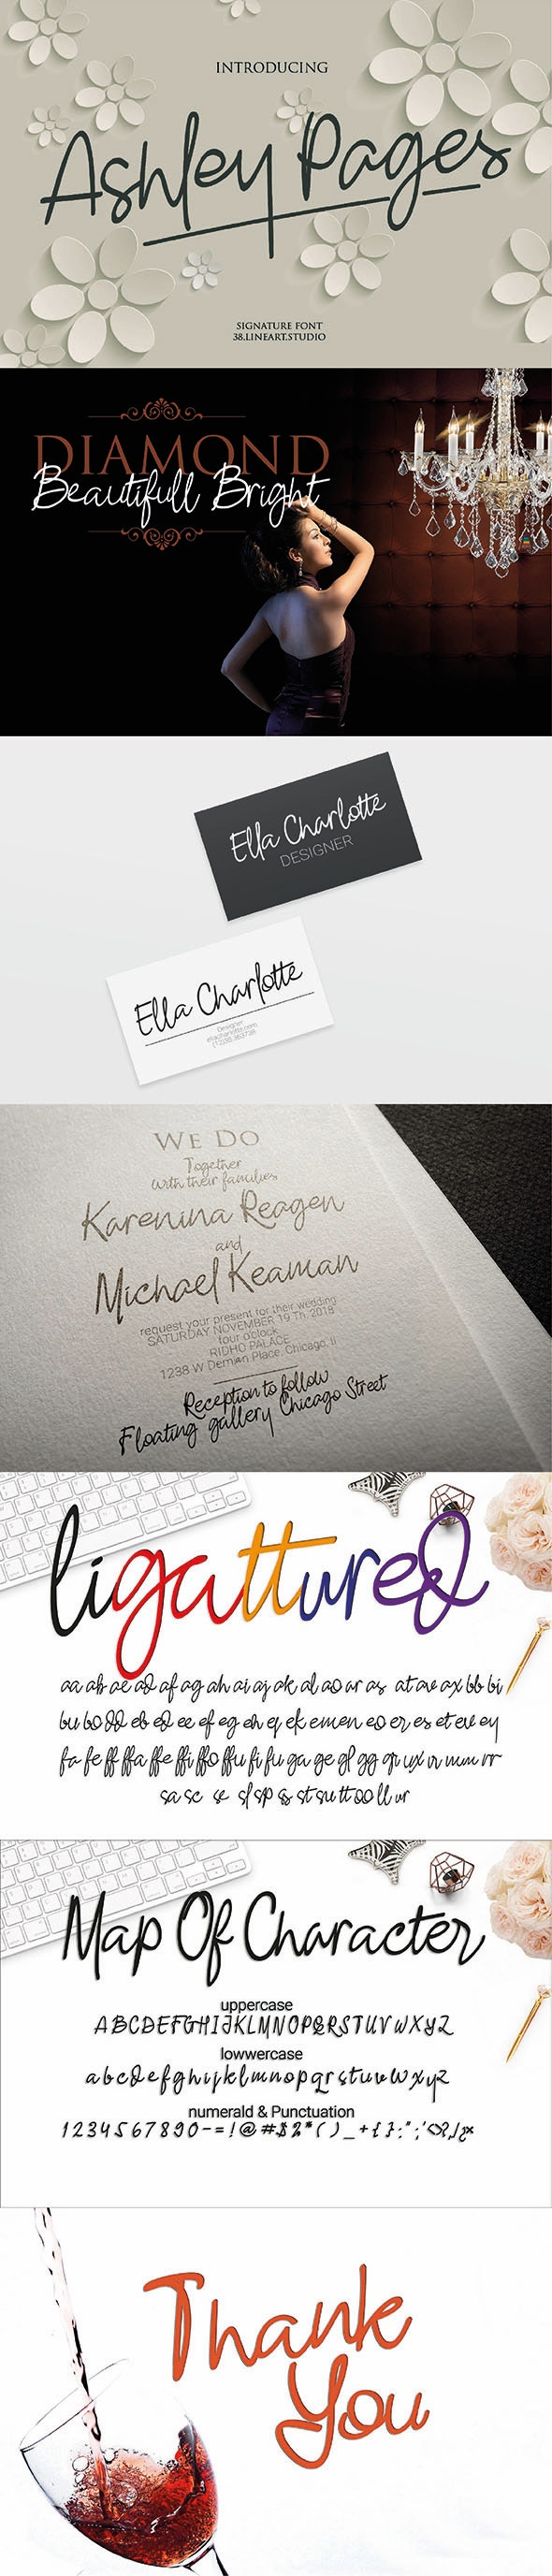 Ashley Pages - Hand-writing Script